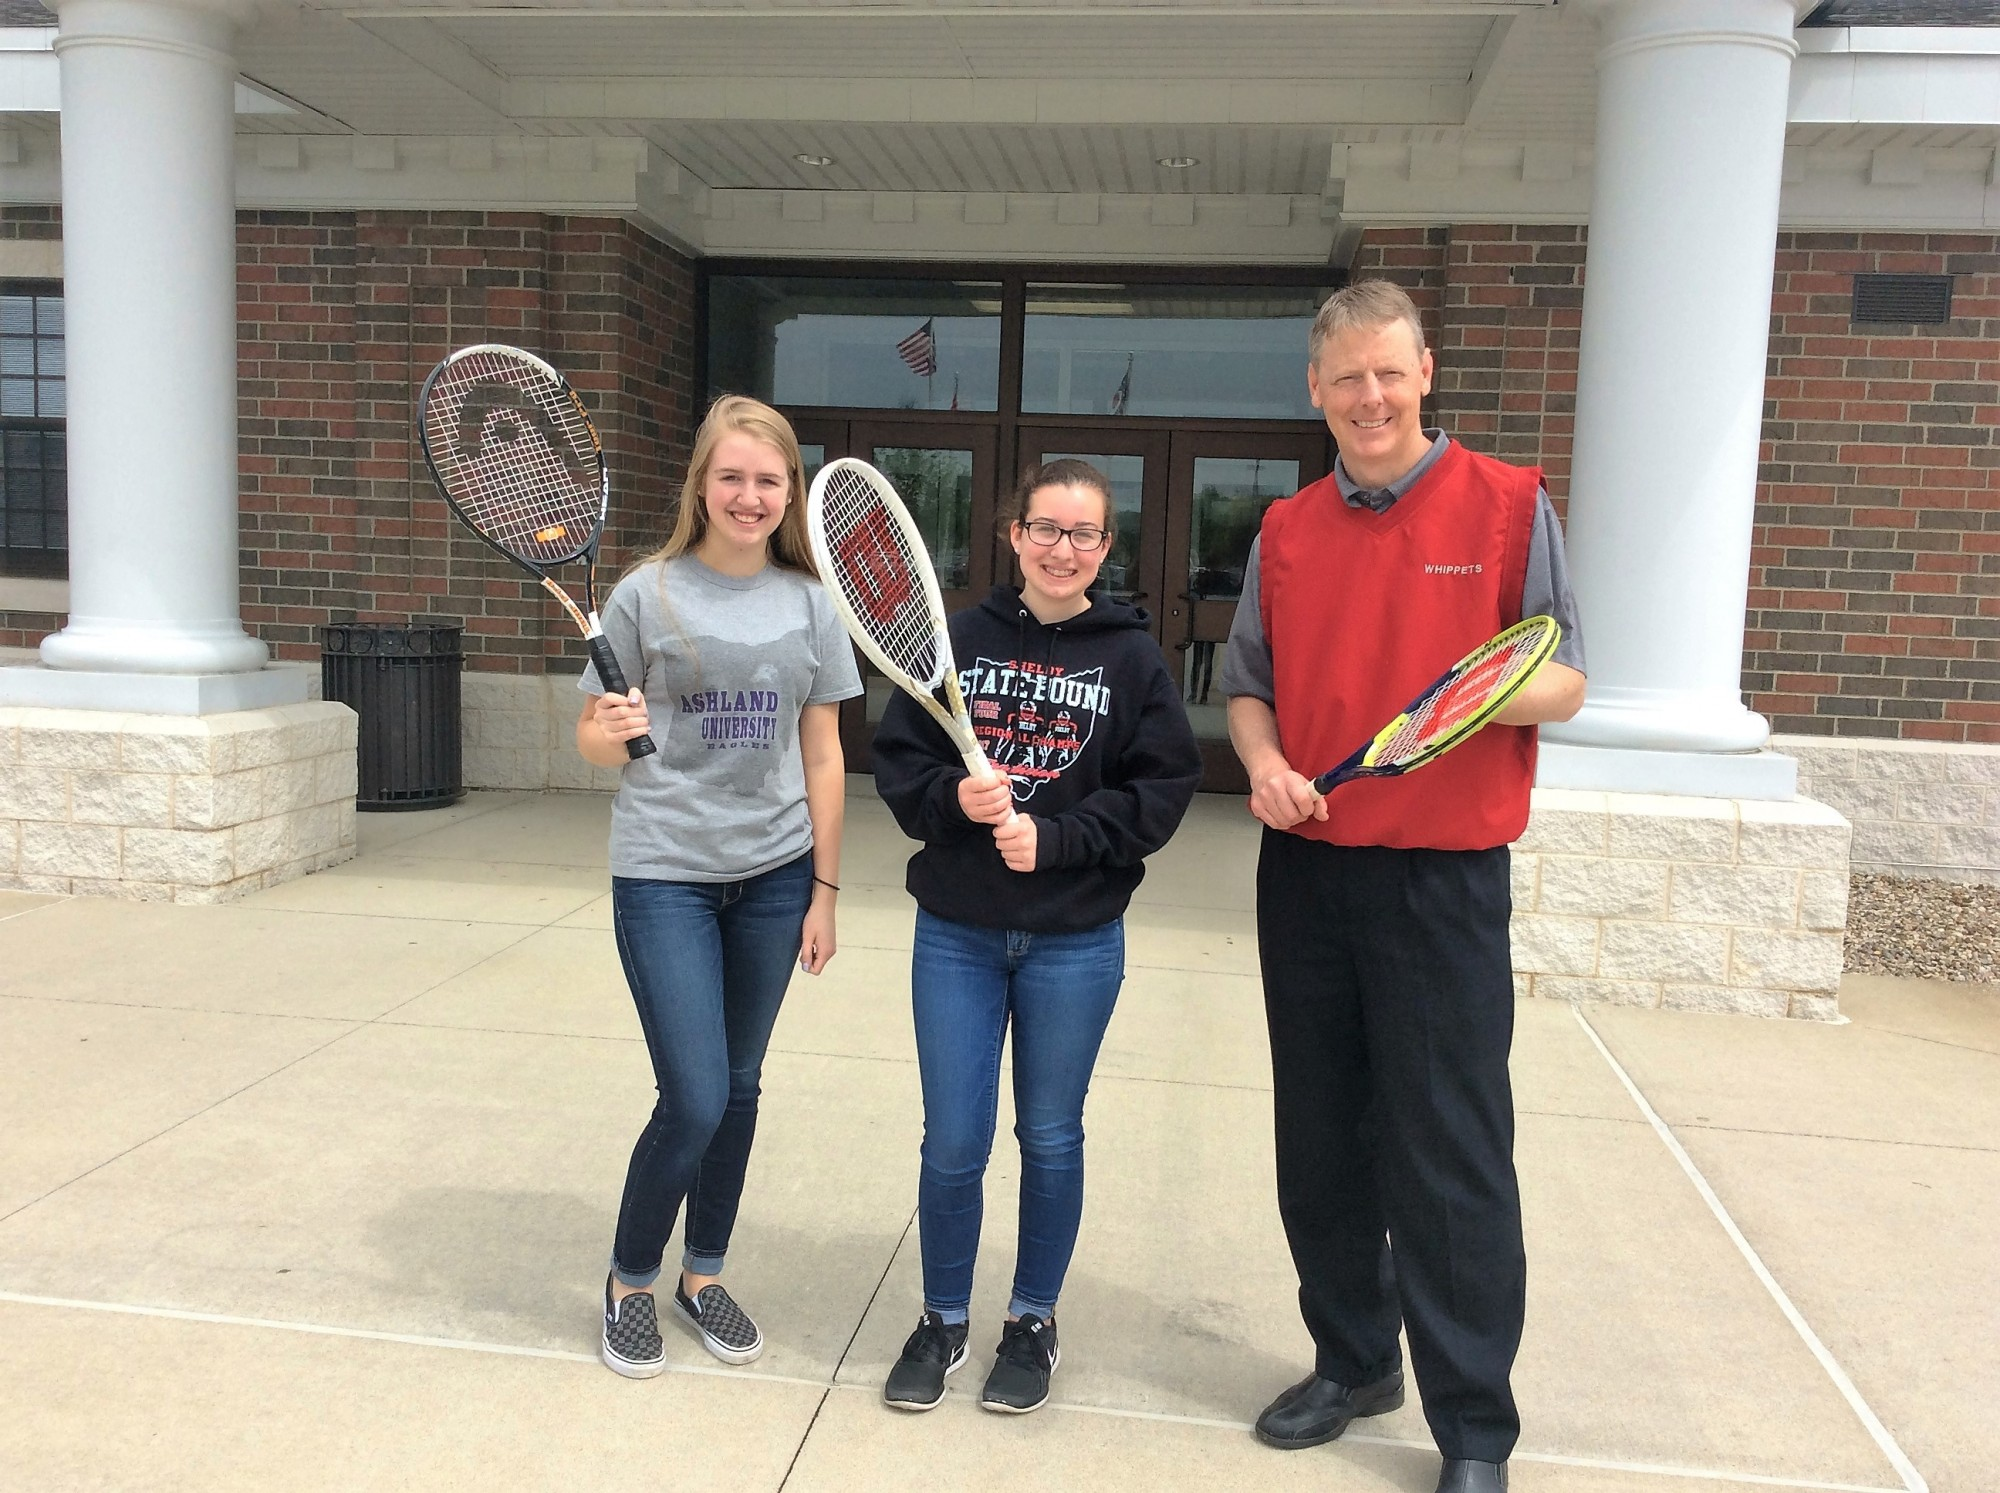 RCCS donates tennis racquets and fishing poles to youth programs